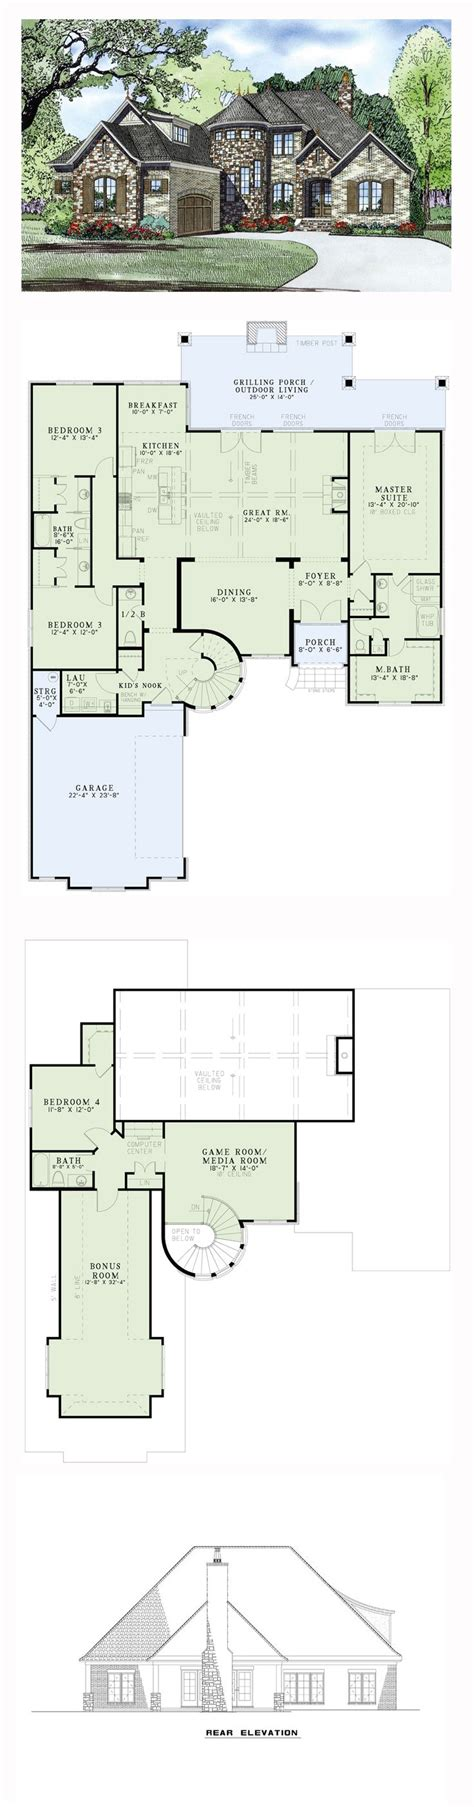 2 story open floor house plans wd laz complete 4 bedroom house plans 2 story luxamcc